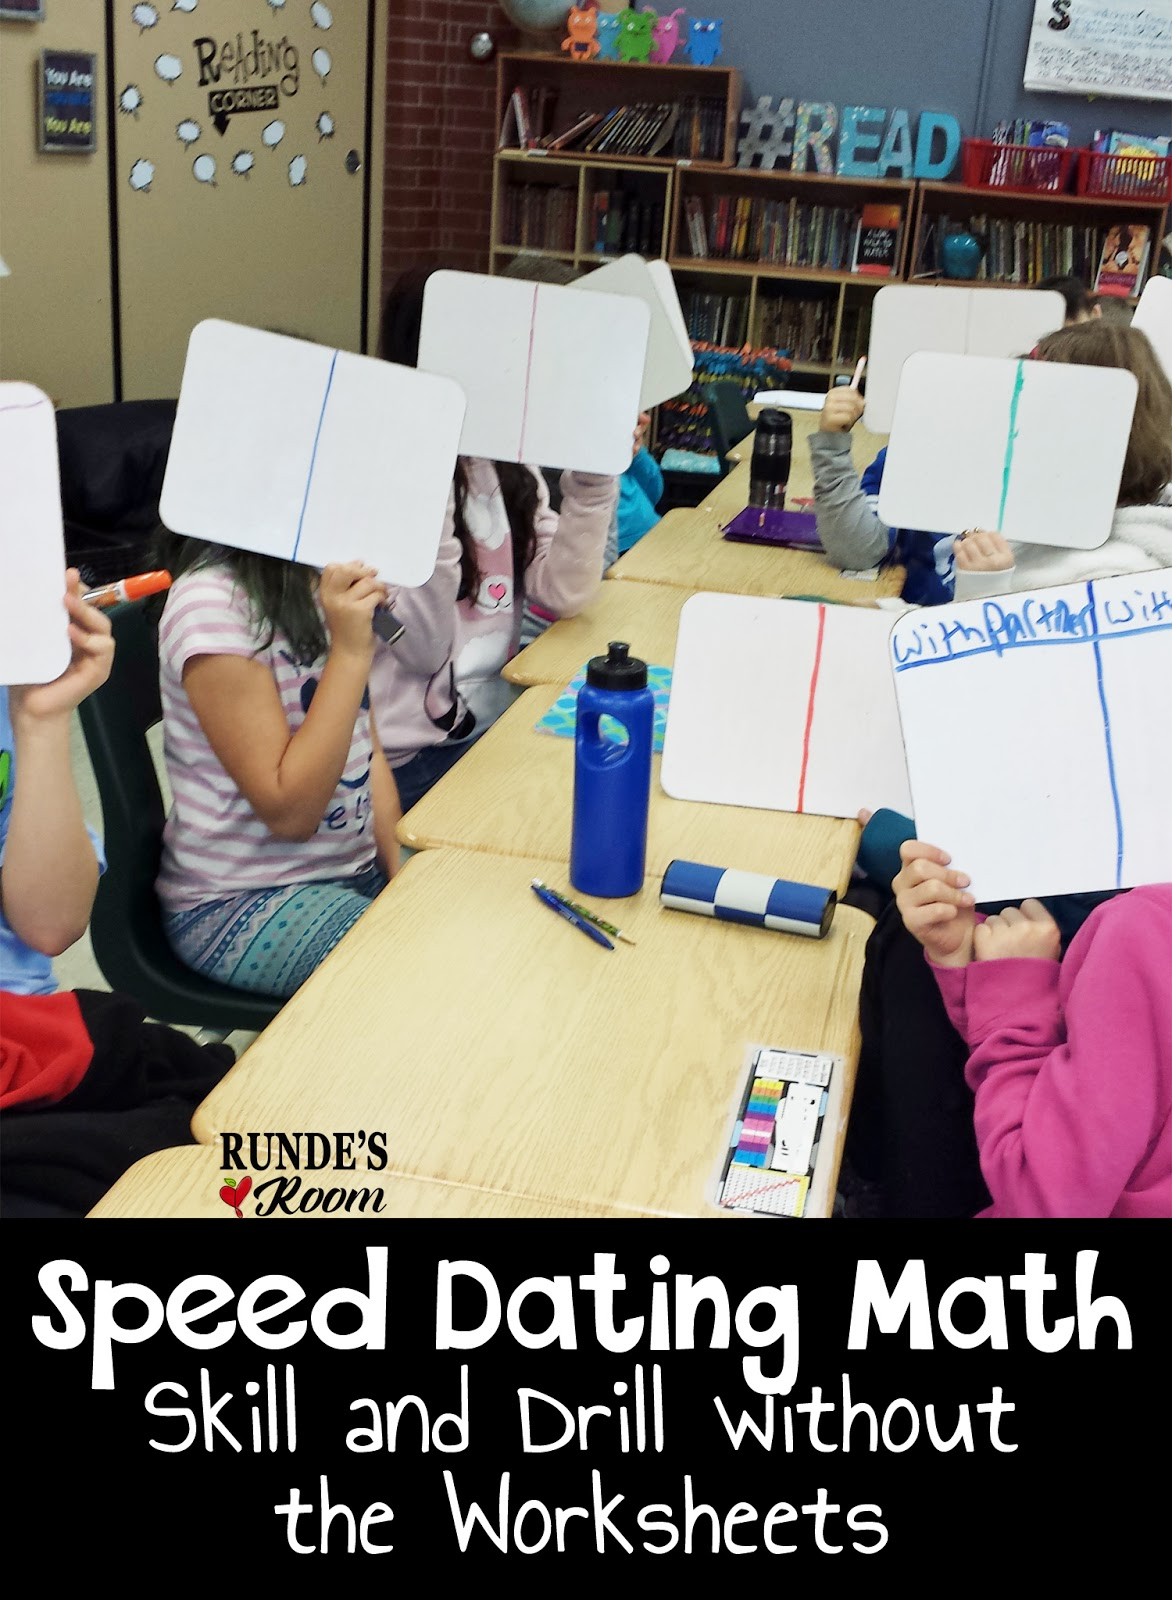 play speed dating online free